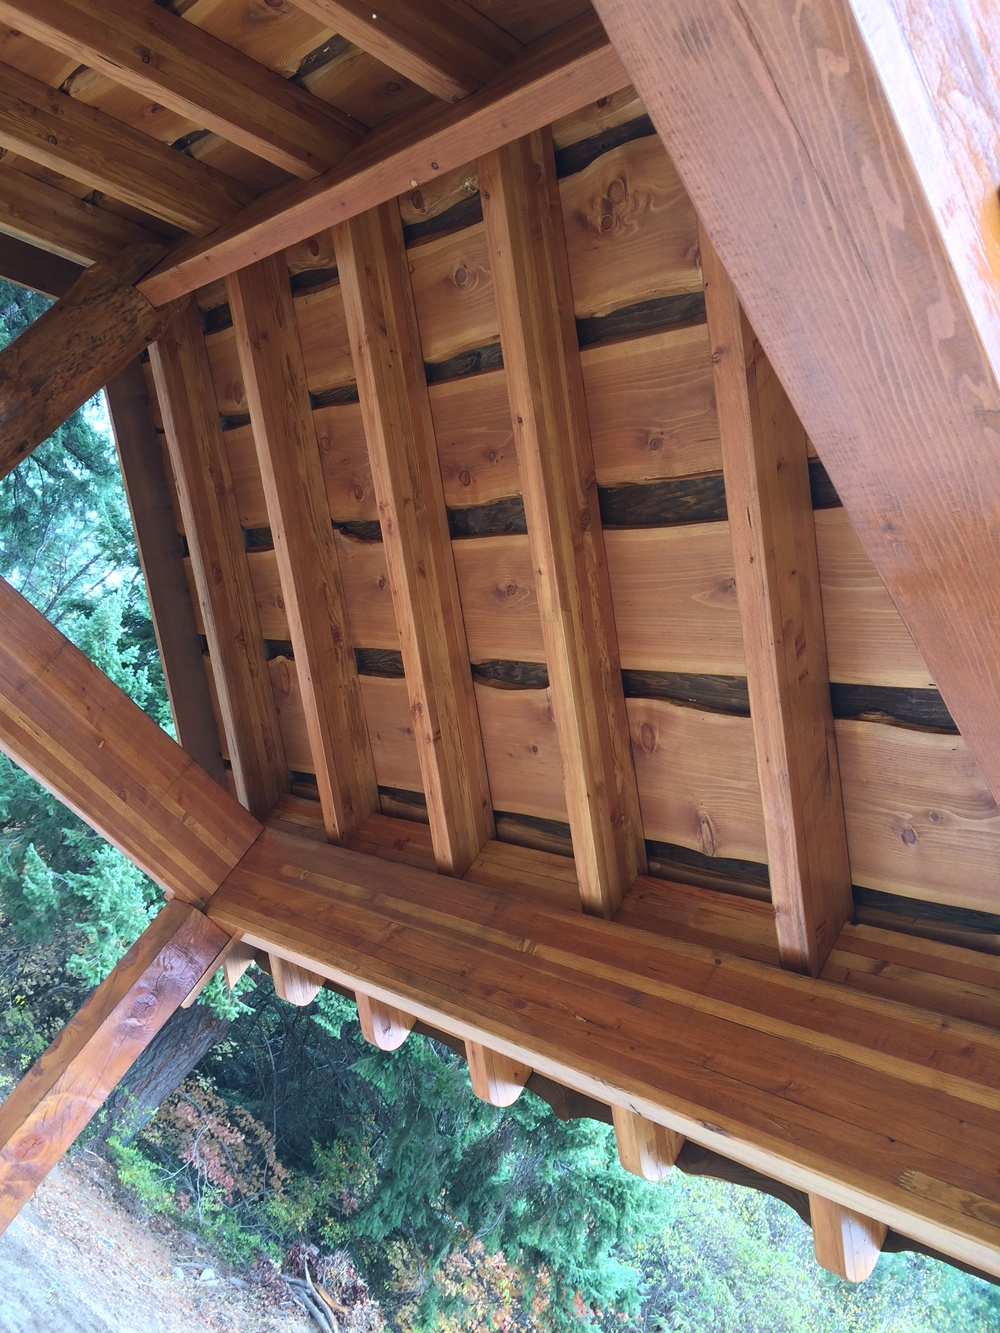 Looking up standing underneath it...